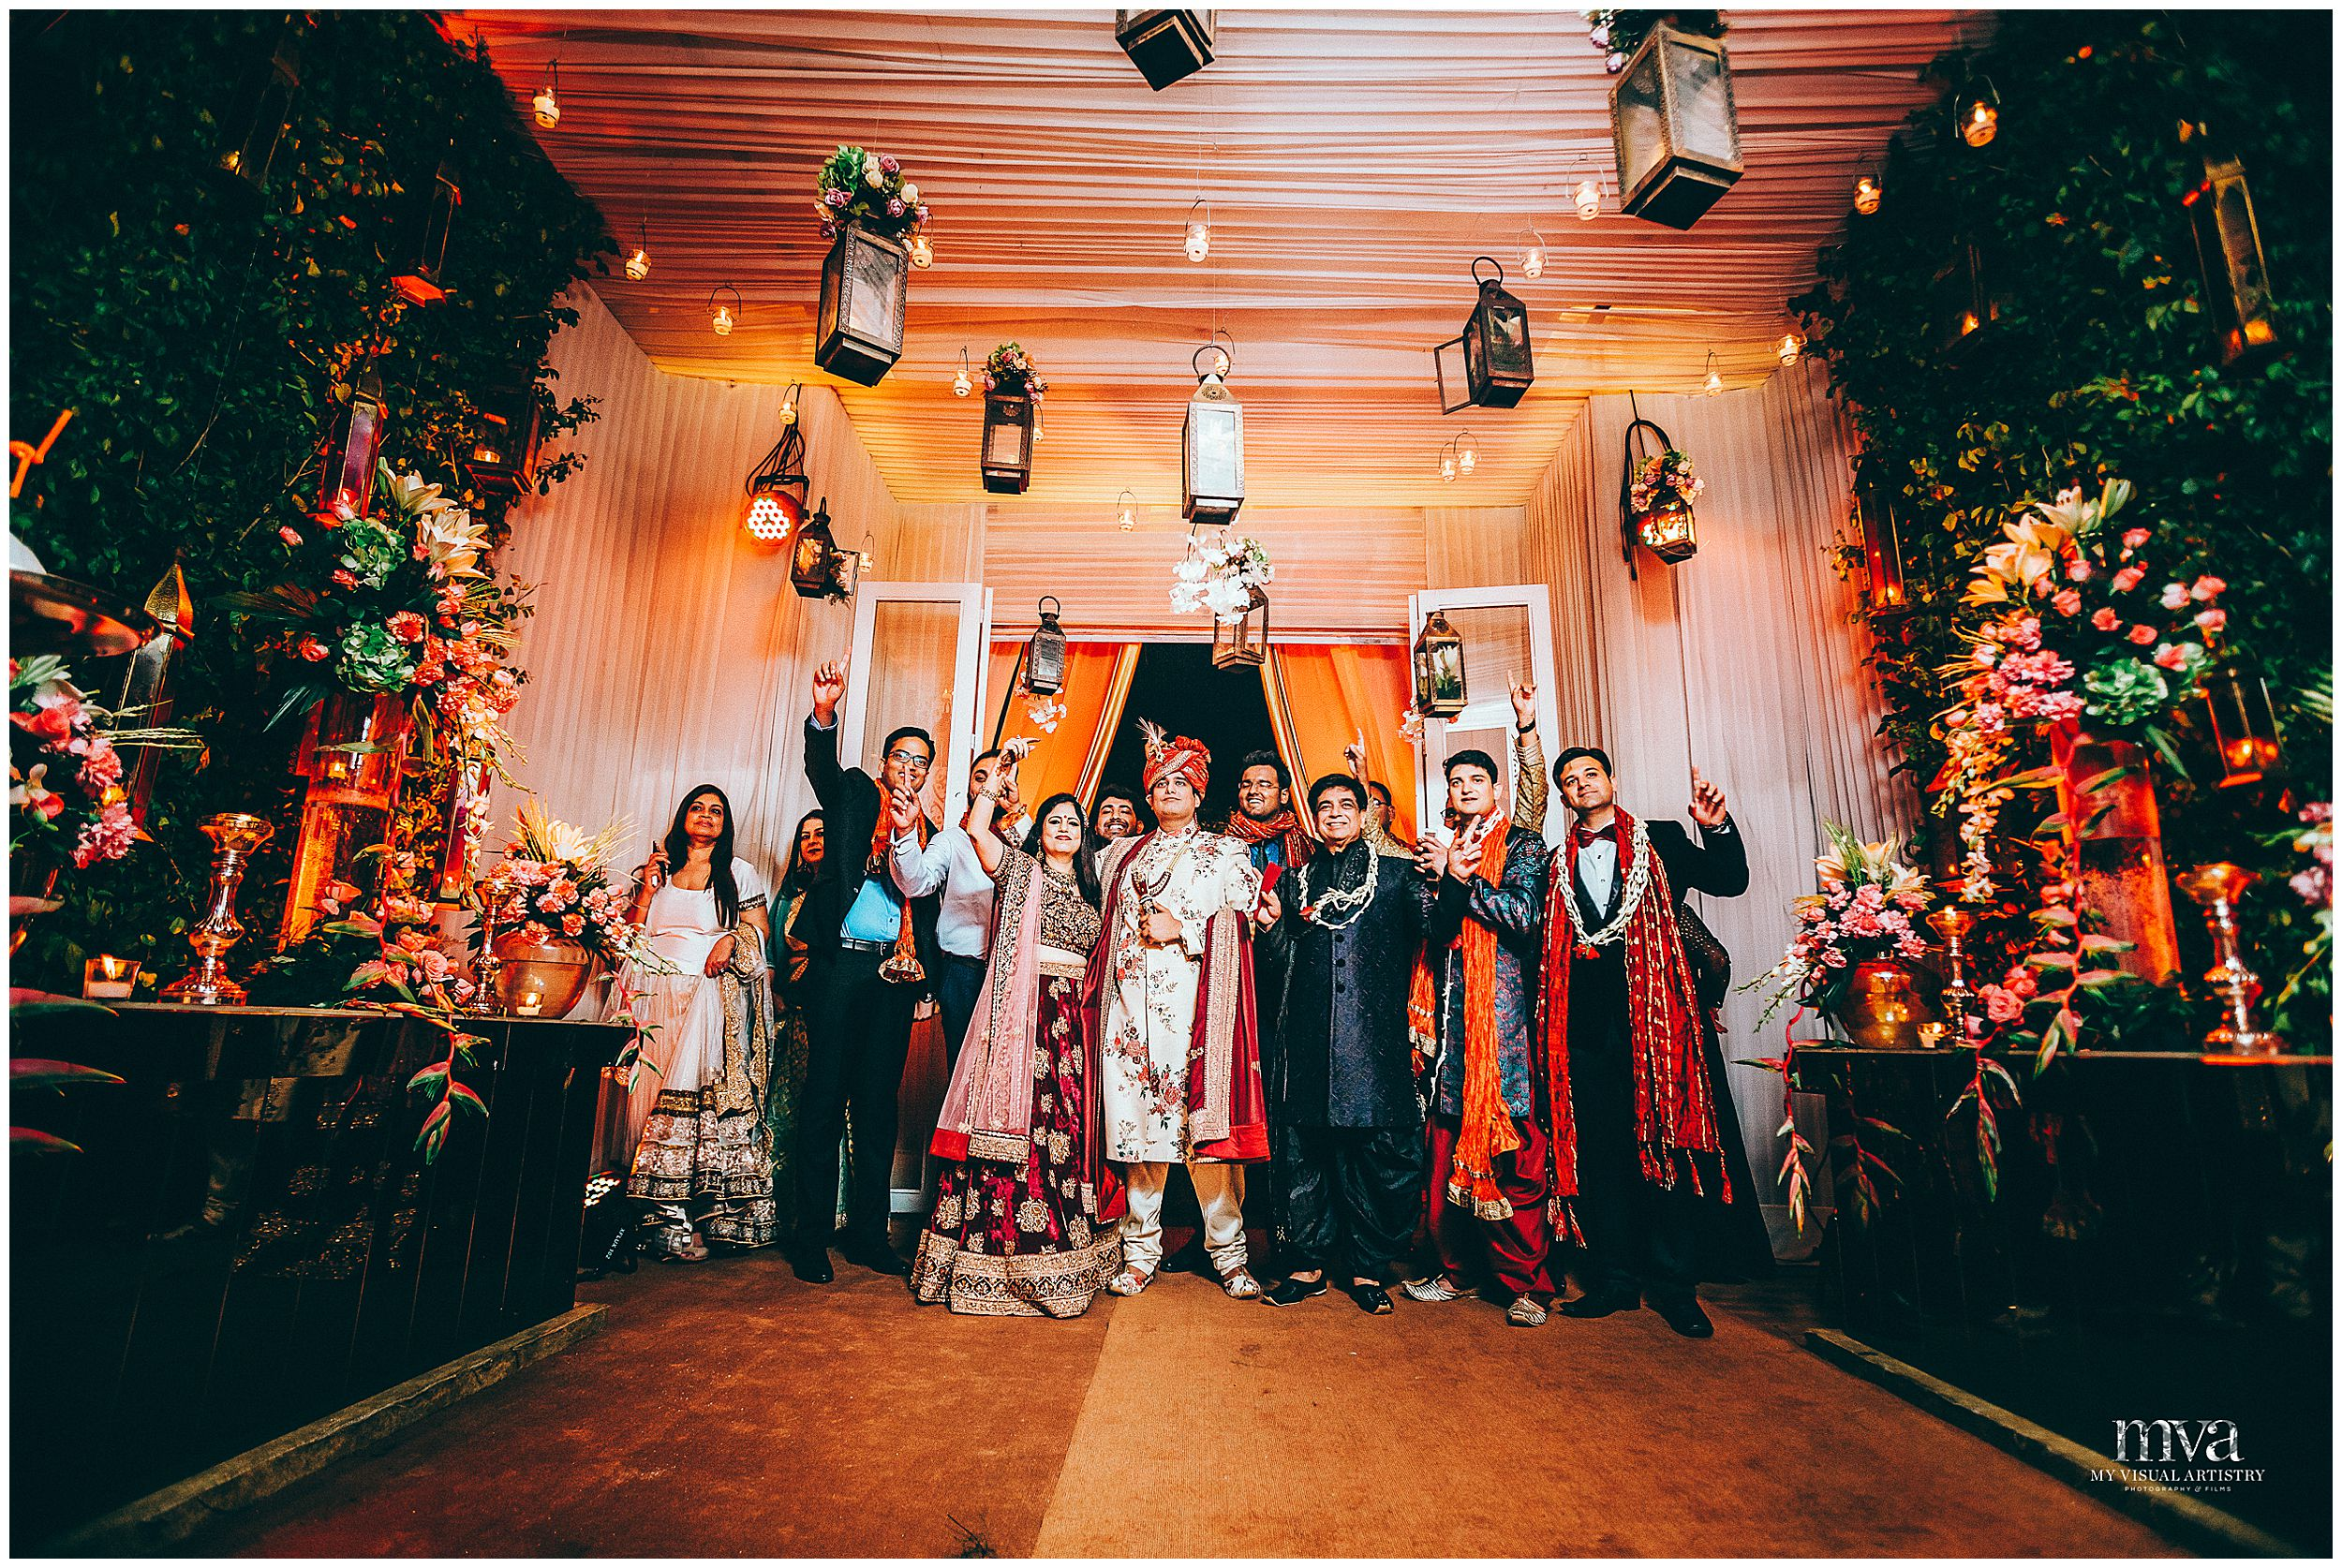 SIDDARTH_SAKSHI_MYVISUALARTISTRY_WEDDING_PHOTOGRAPHY_MVA_EROSHANGRILA_DELHI_0034.jpg